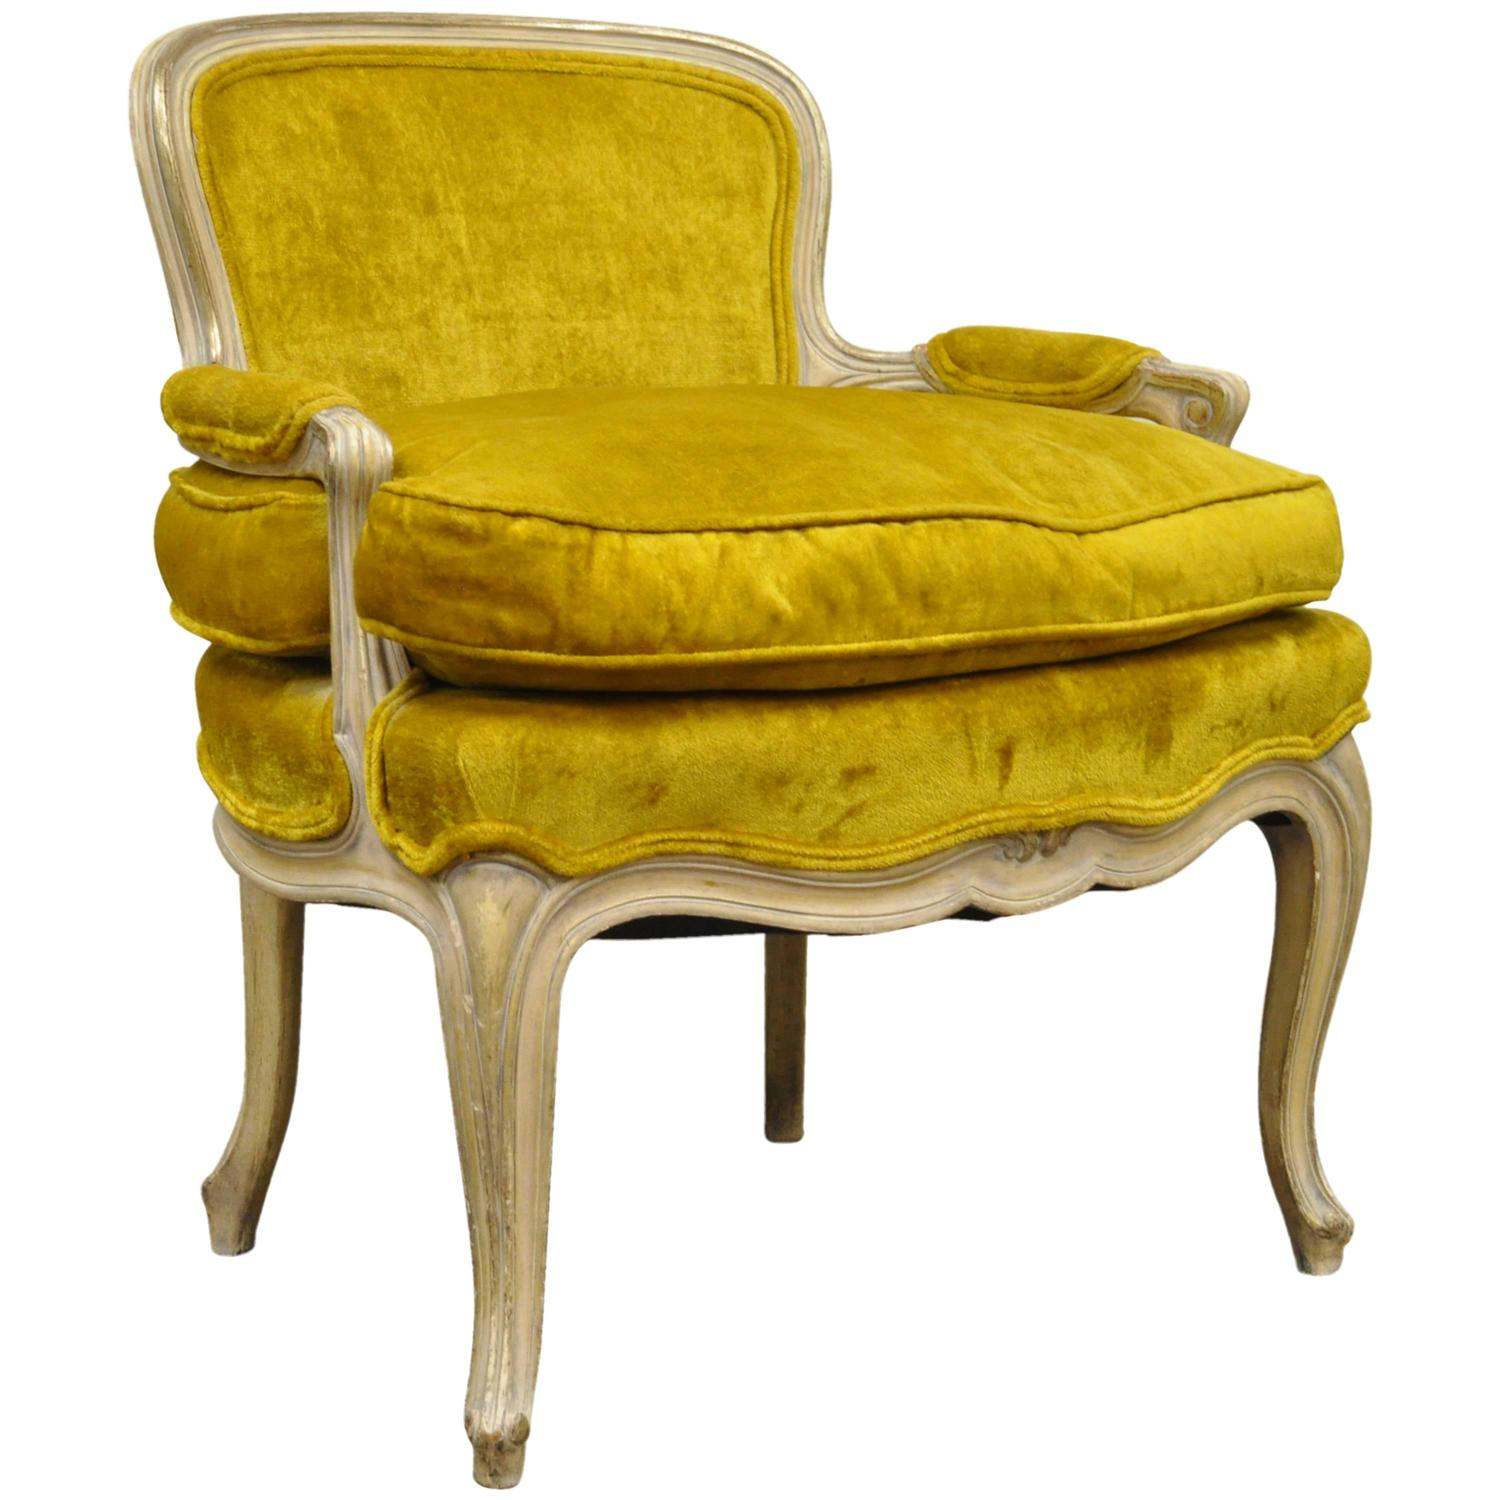 Unique 1950s Small French Boudoir Louis XV Style Childu0027s Bergere Armchair  At 1stdibs